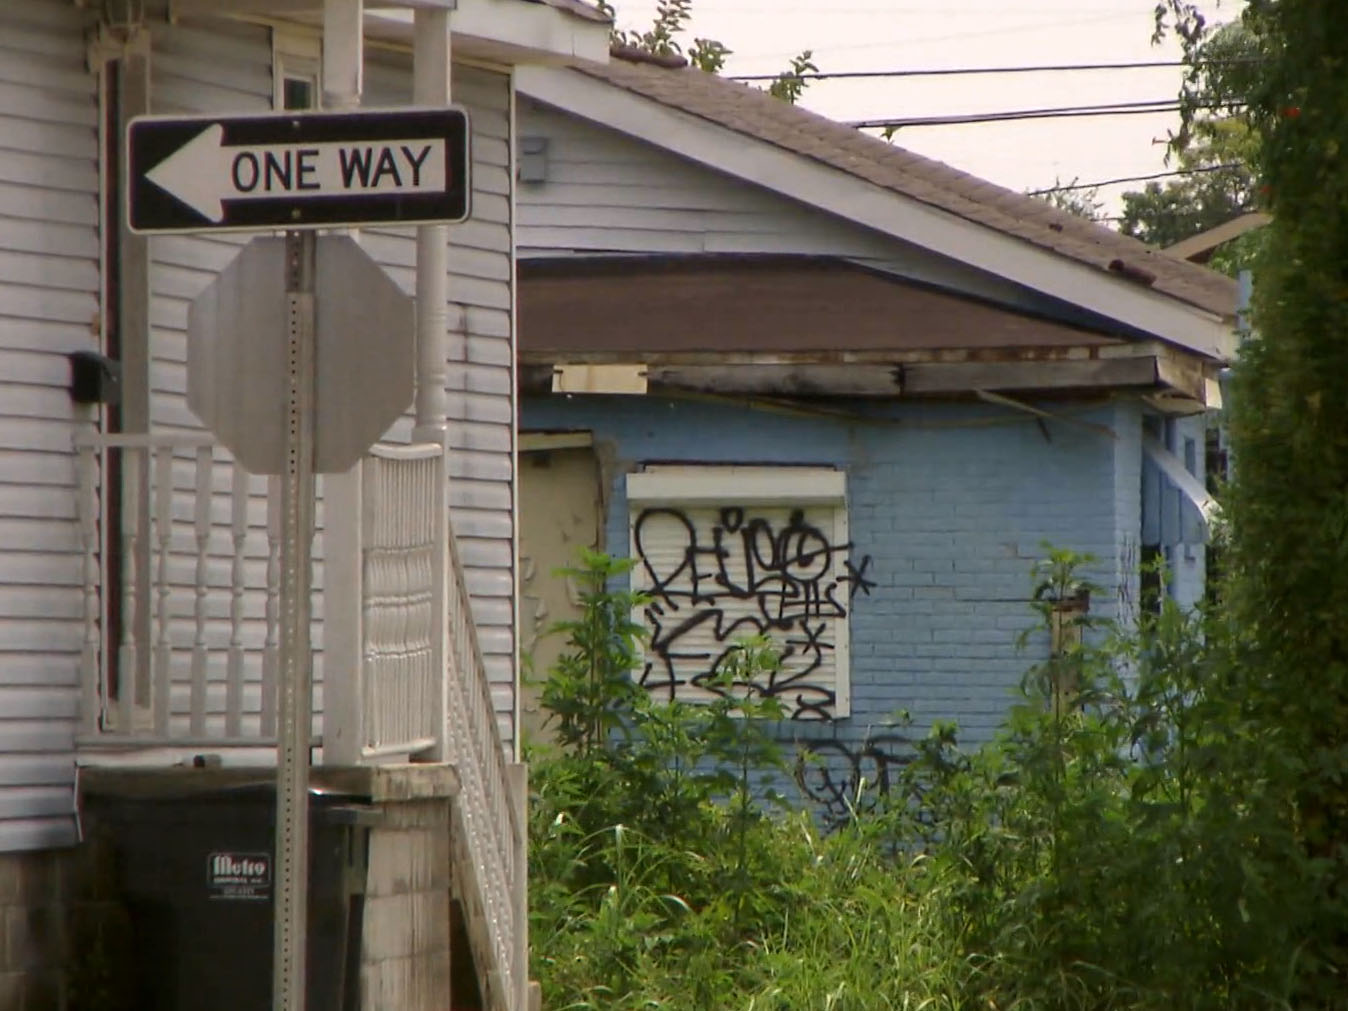 New Orleans still healing 10 years later